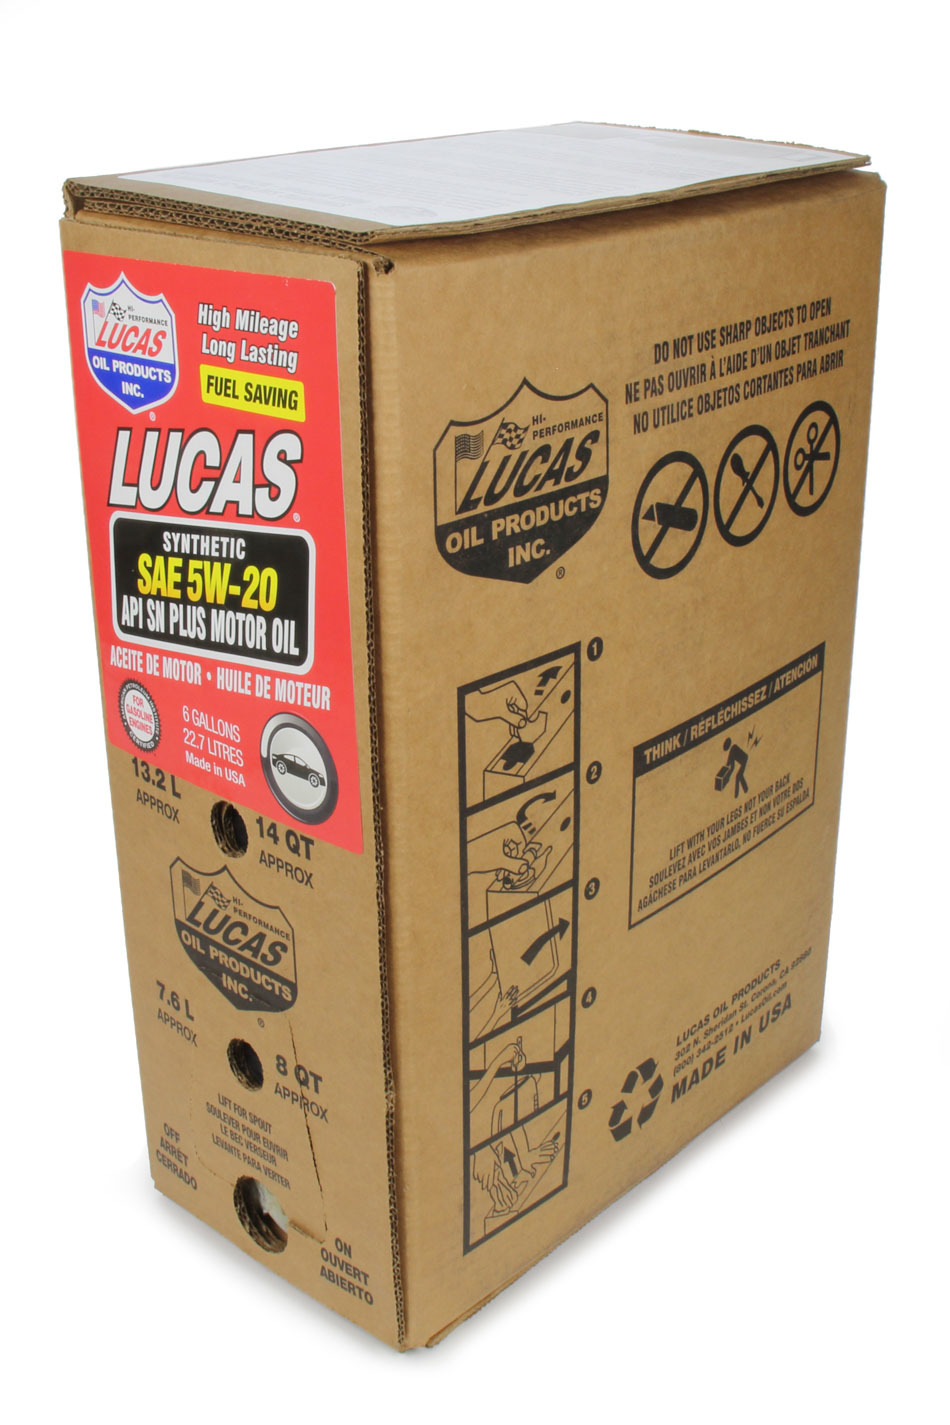 Synthetic SAE 5W20 Oil 6 Gallon Bag In Box